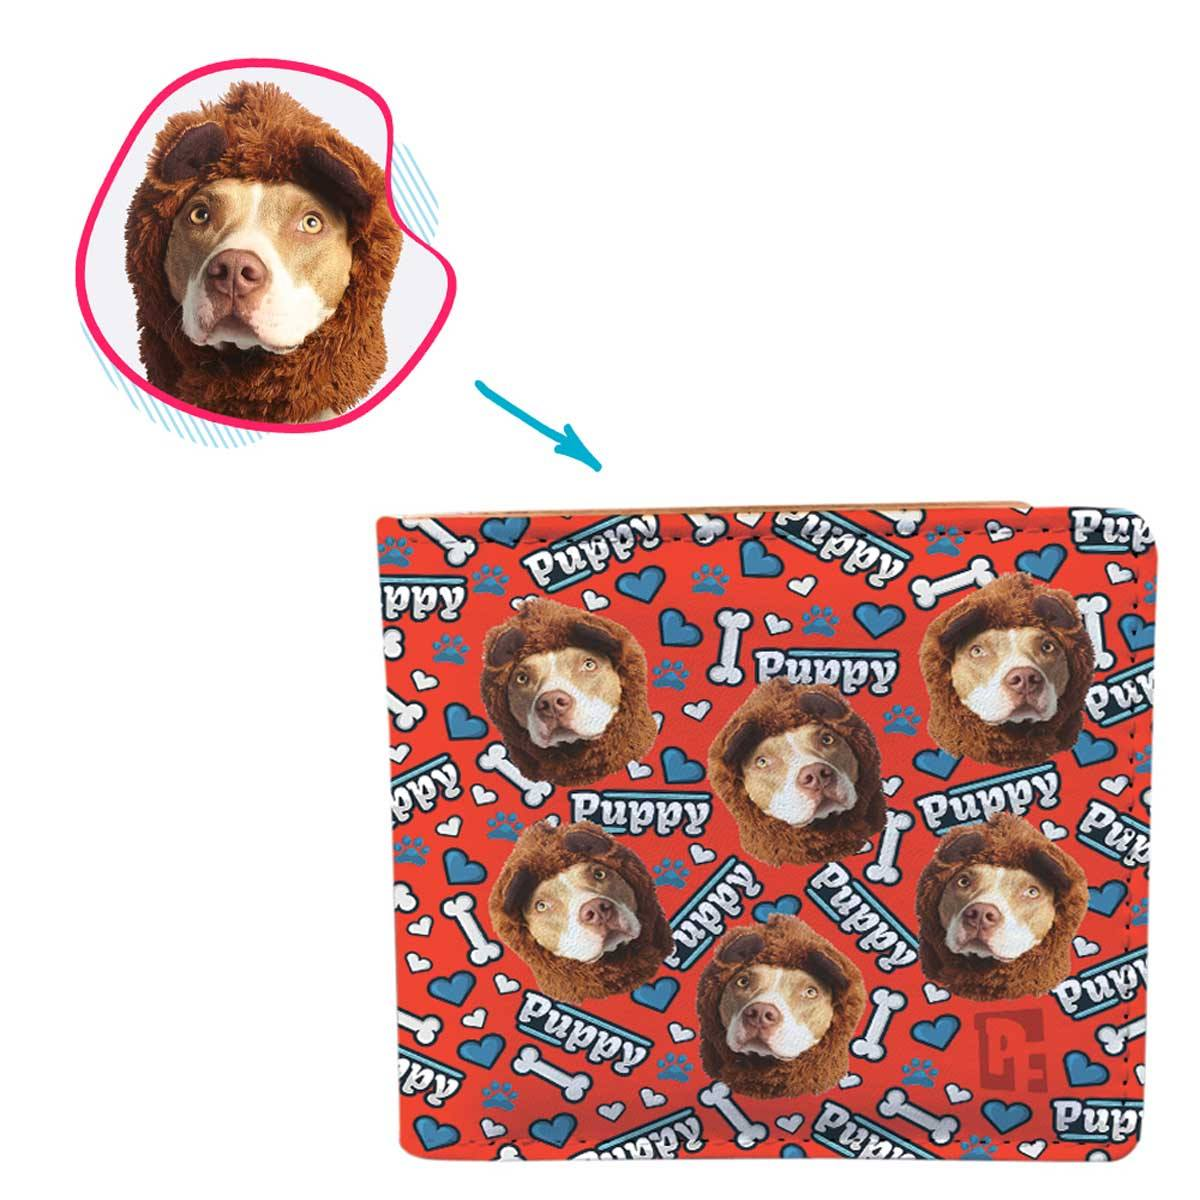 red Puppy wallet personalized with photo of face printed on it